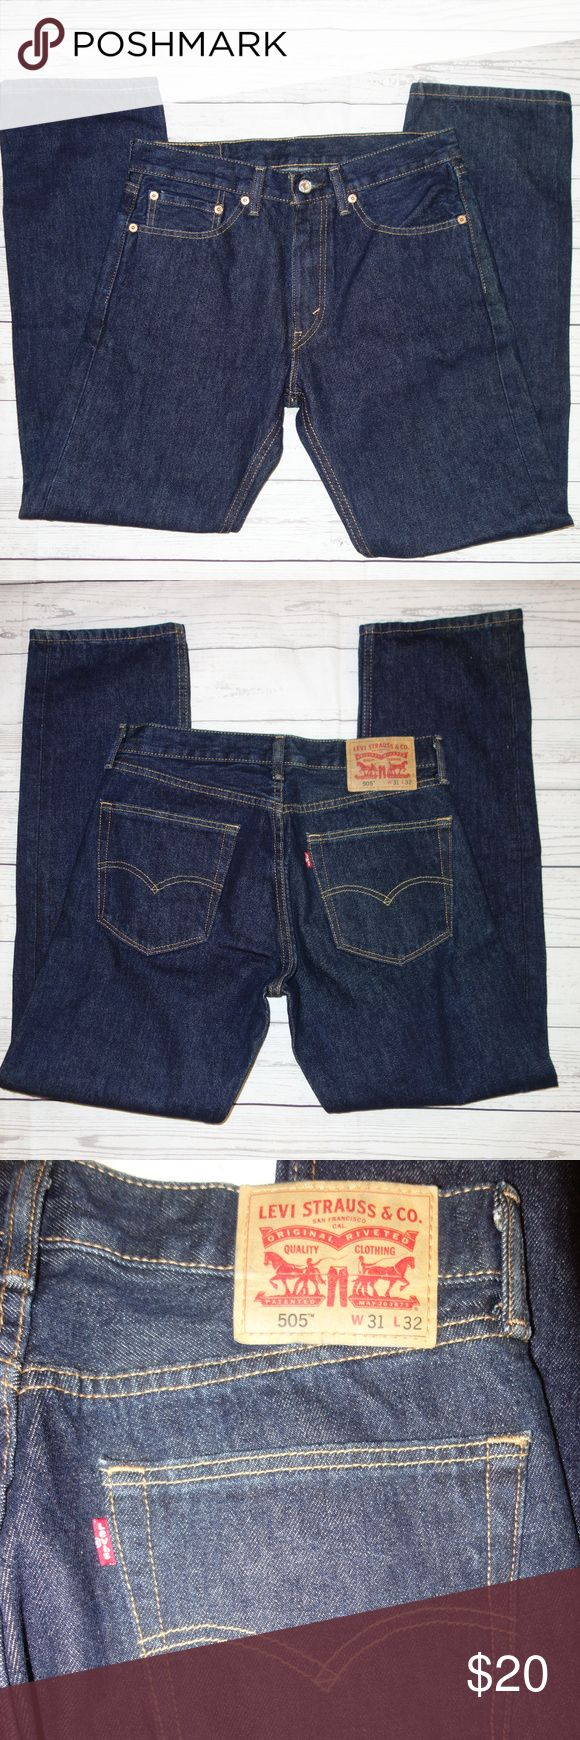 Levis 505 Jeans Straight Leg 31 32 Classic Dark Levis 505 Jeans Straight Leg 31 32 Classic Dark Wash Button and zip fly Dark wash never worn! Waist is 31 Inseam is 32 Classic 5 pocket styling I have other items like this listed Thank you for looking! Levi's Jeans Straight